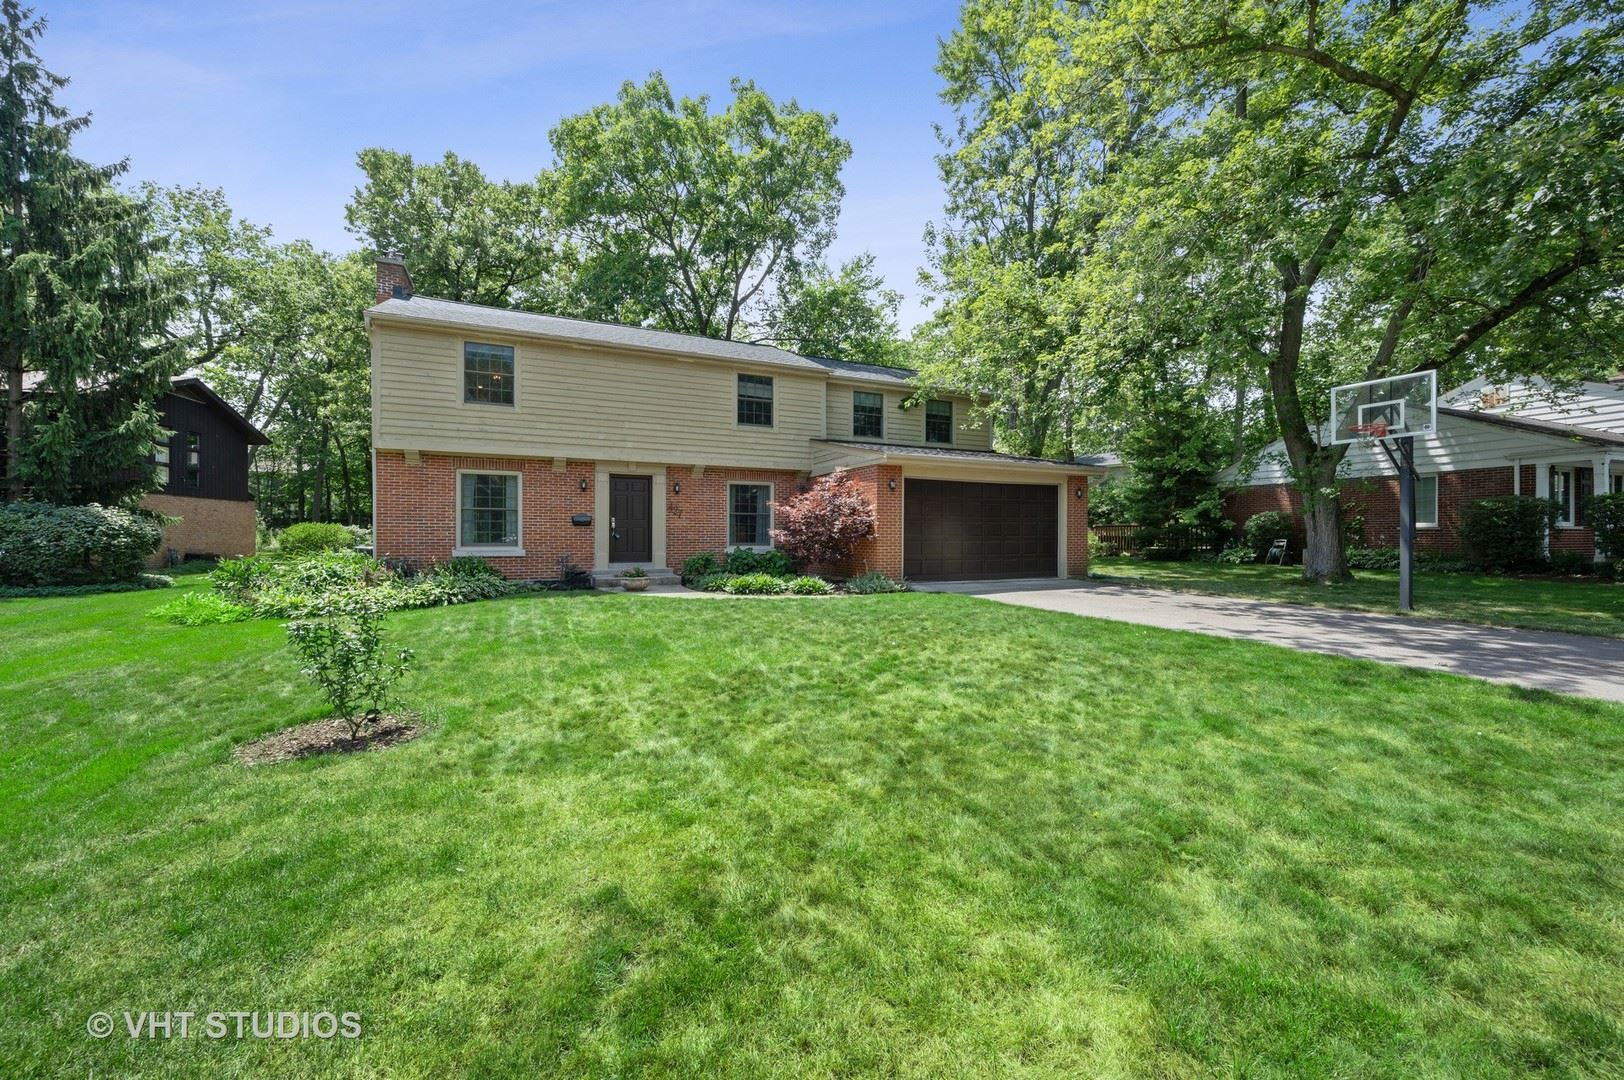 427 Woodvale Avenue, Deerfield, IL 60015 - #: 10795965